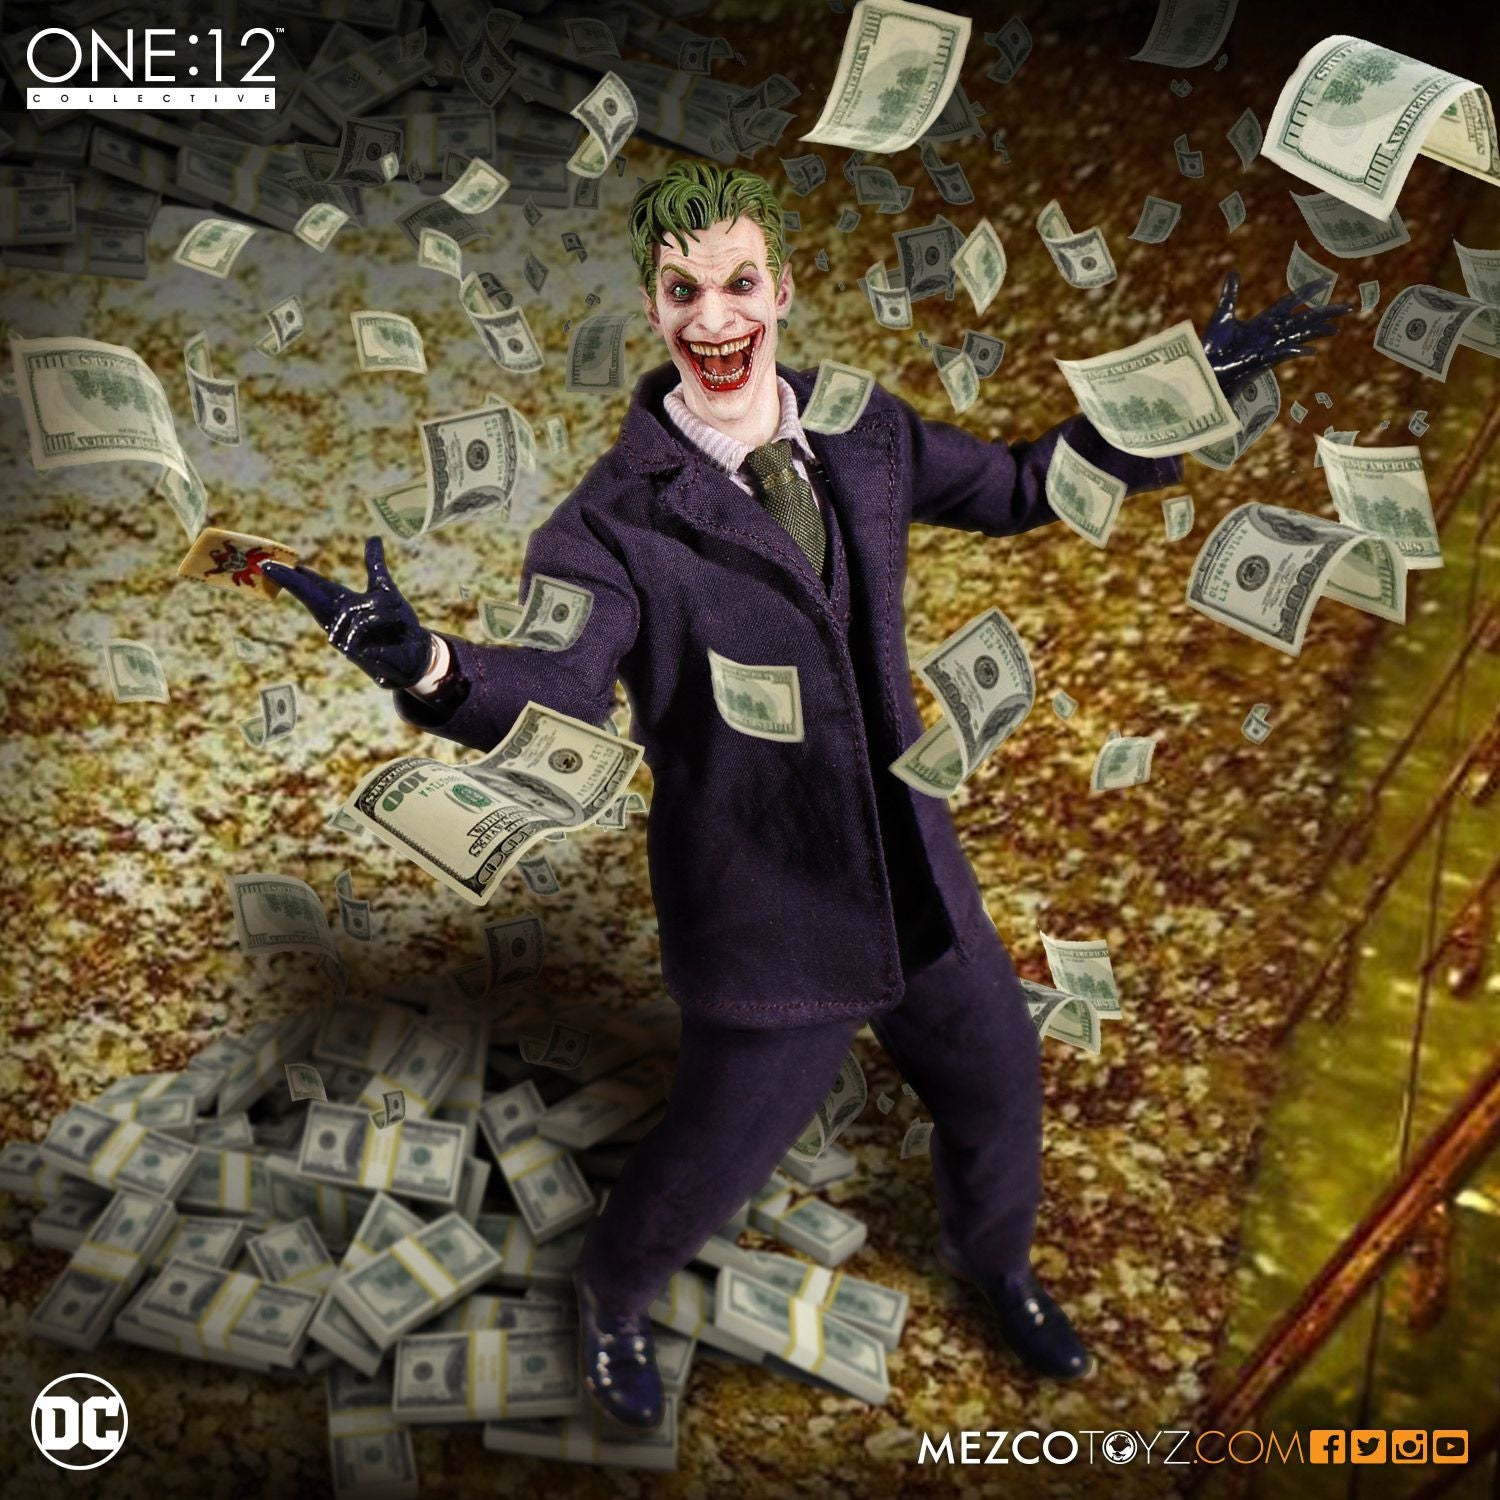 Mezco - One:12 Collective - The Joker - Marvelous Toys - 5